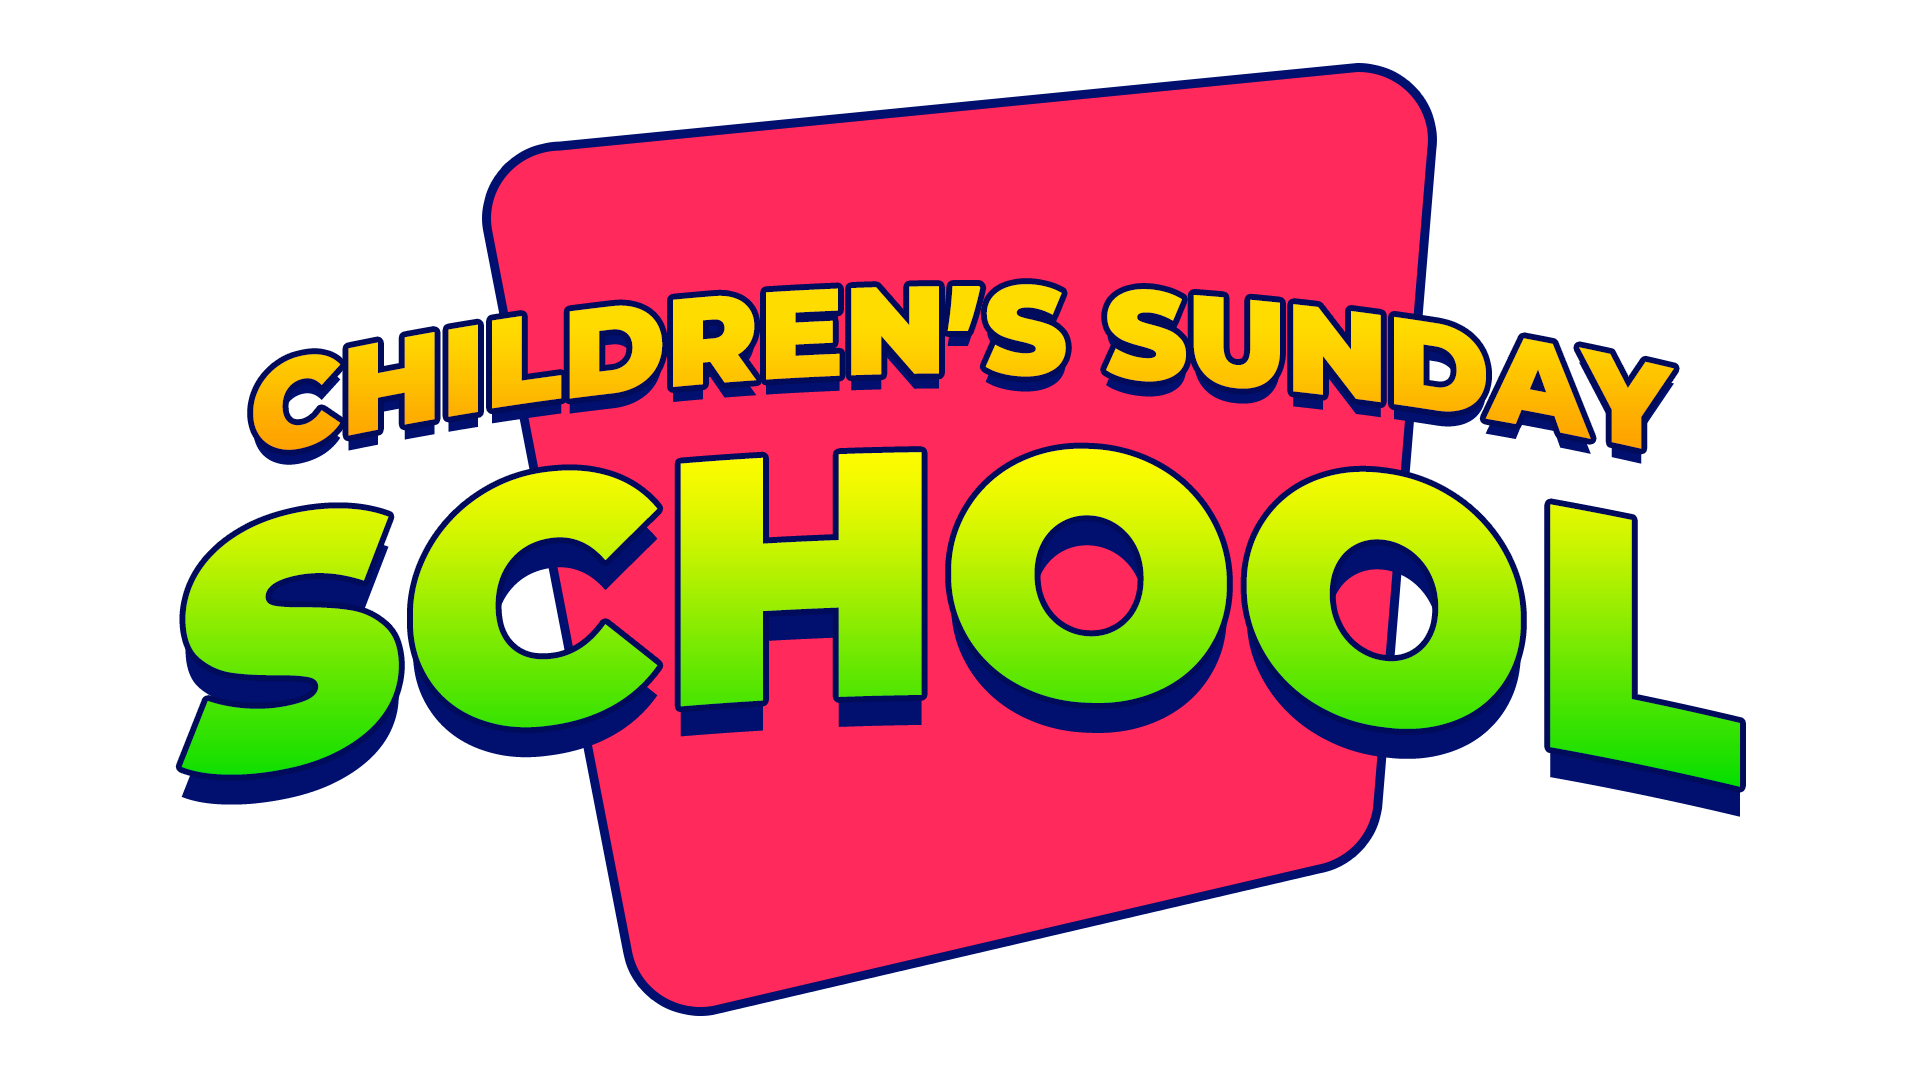 Children's Sunday School Logo.png